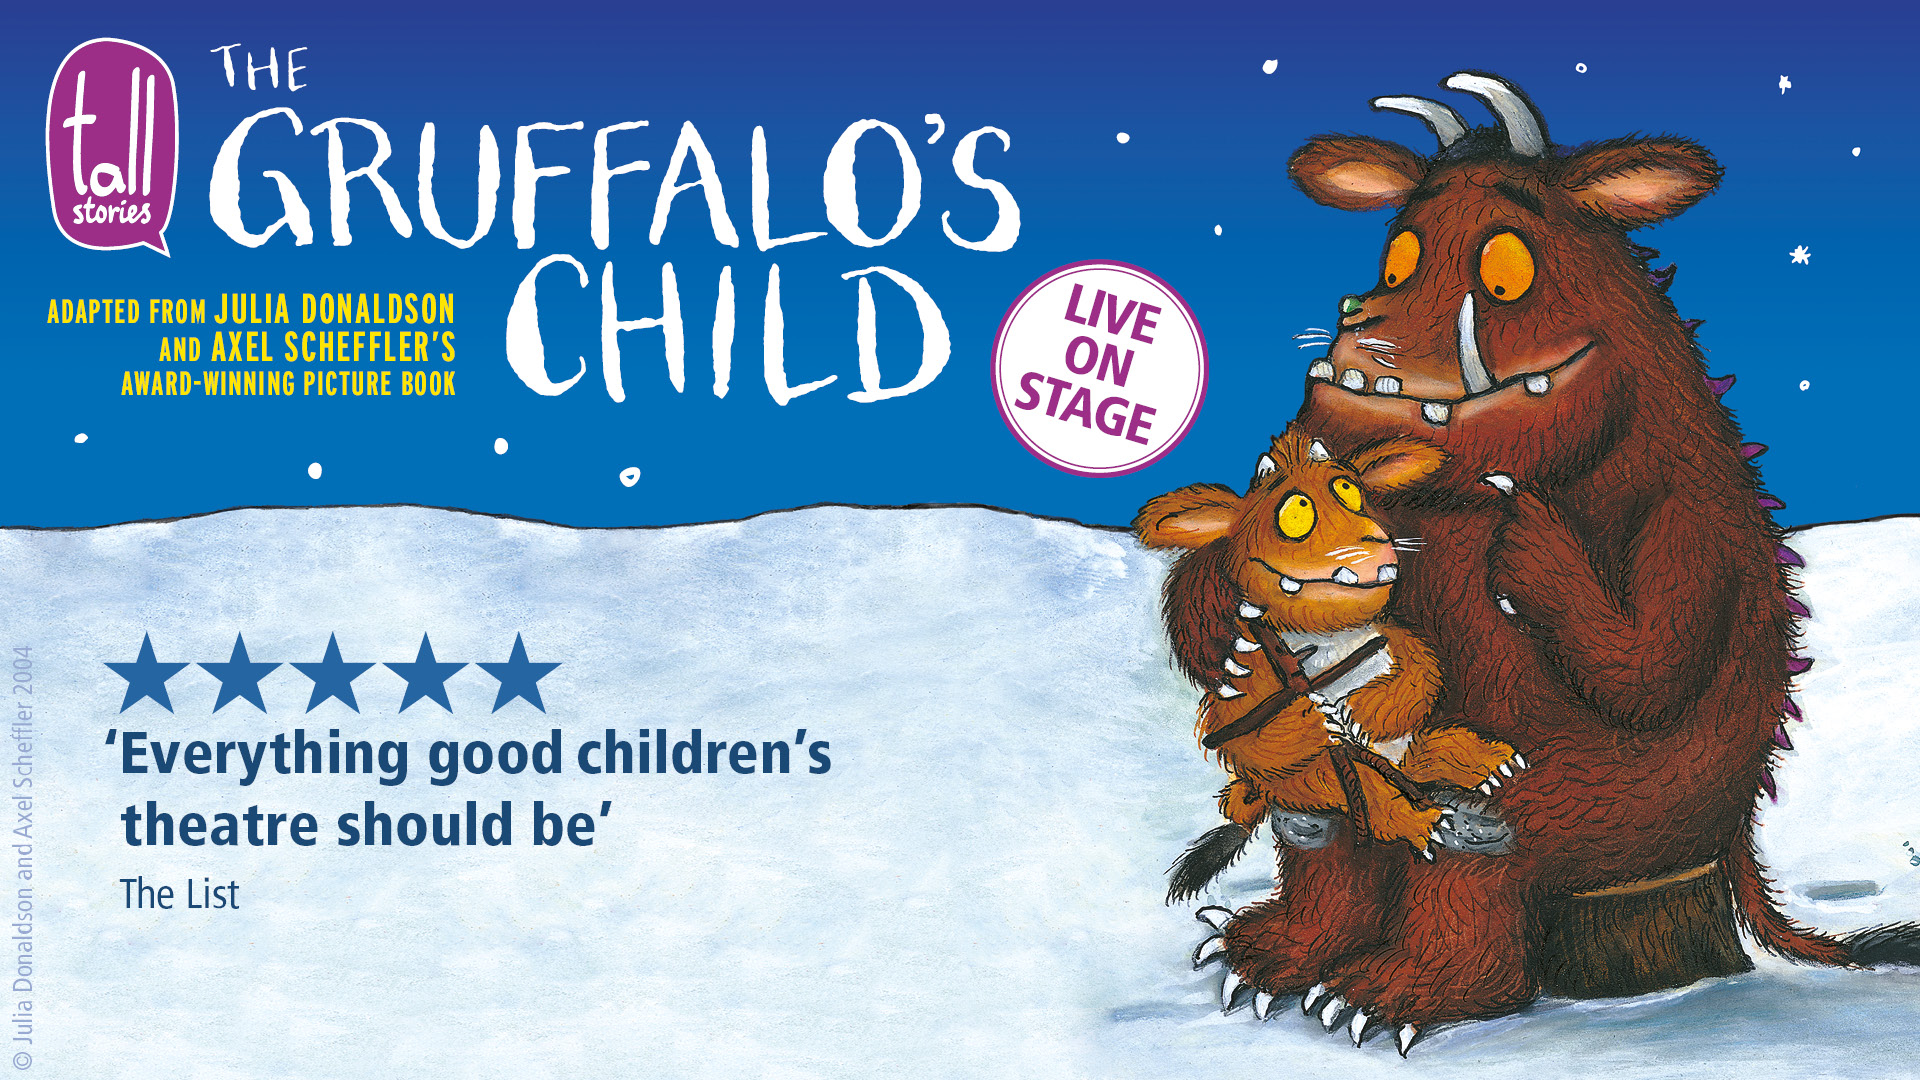 The Gruffalo's Child promotional image (picture book drawing)